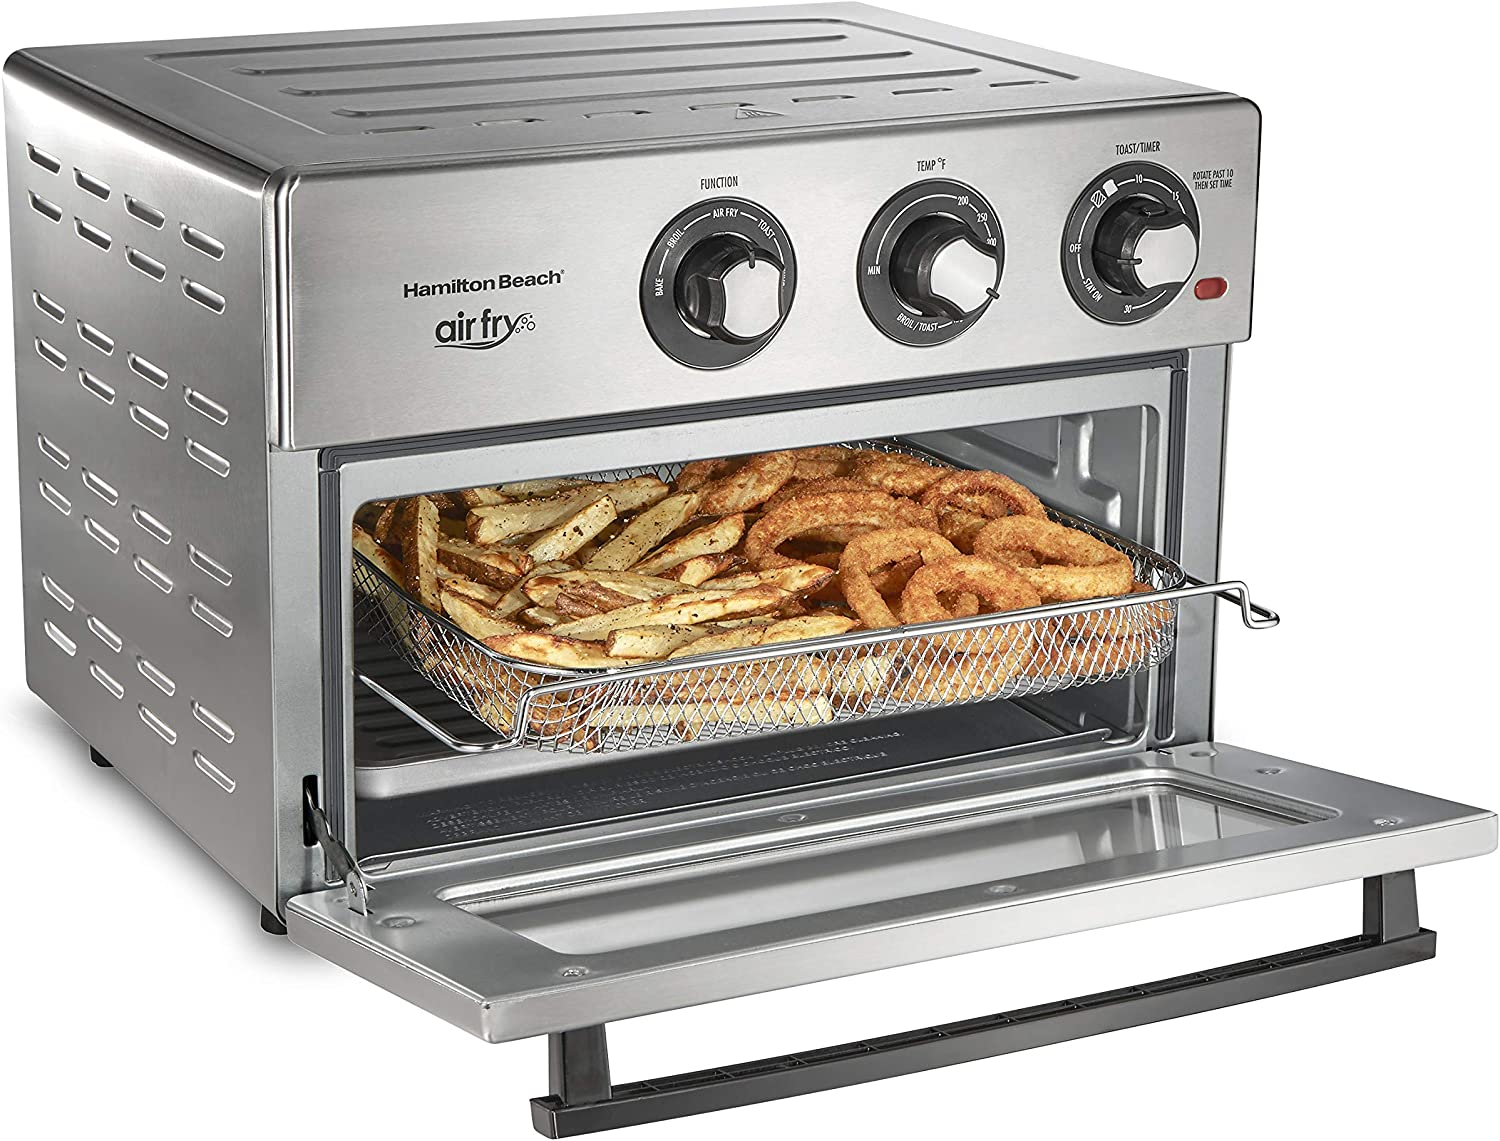 Hamilton Beach Air Fryer Convection Countertop Toaster Oven with Frying Basket, Bake Pan and Broil Rack, 1800 Watts, Stainless Steel (31225)